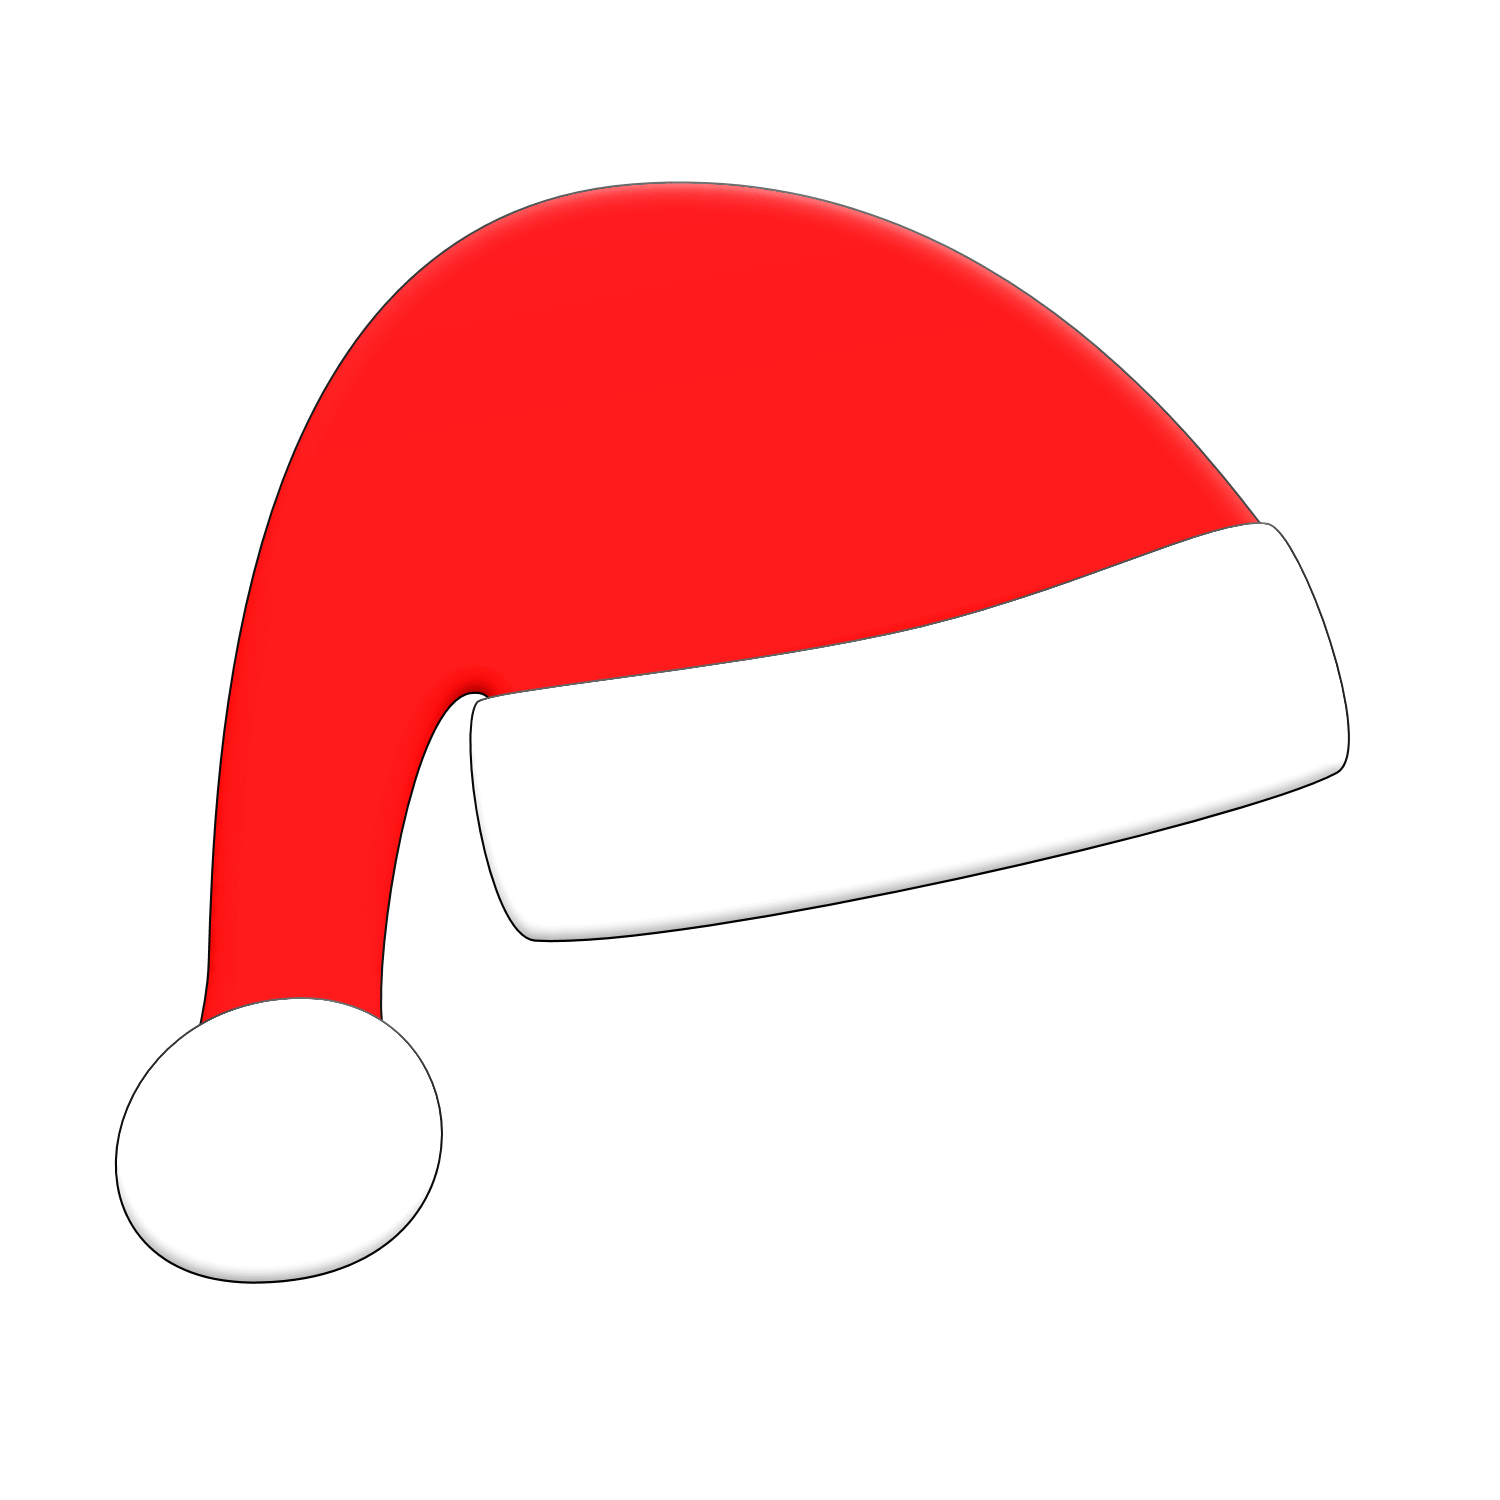 PNG Transparent Christmas Hat